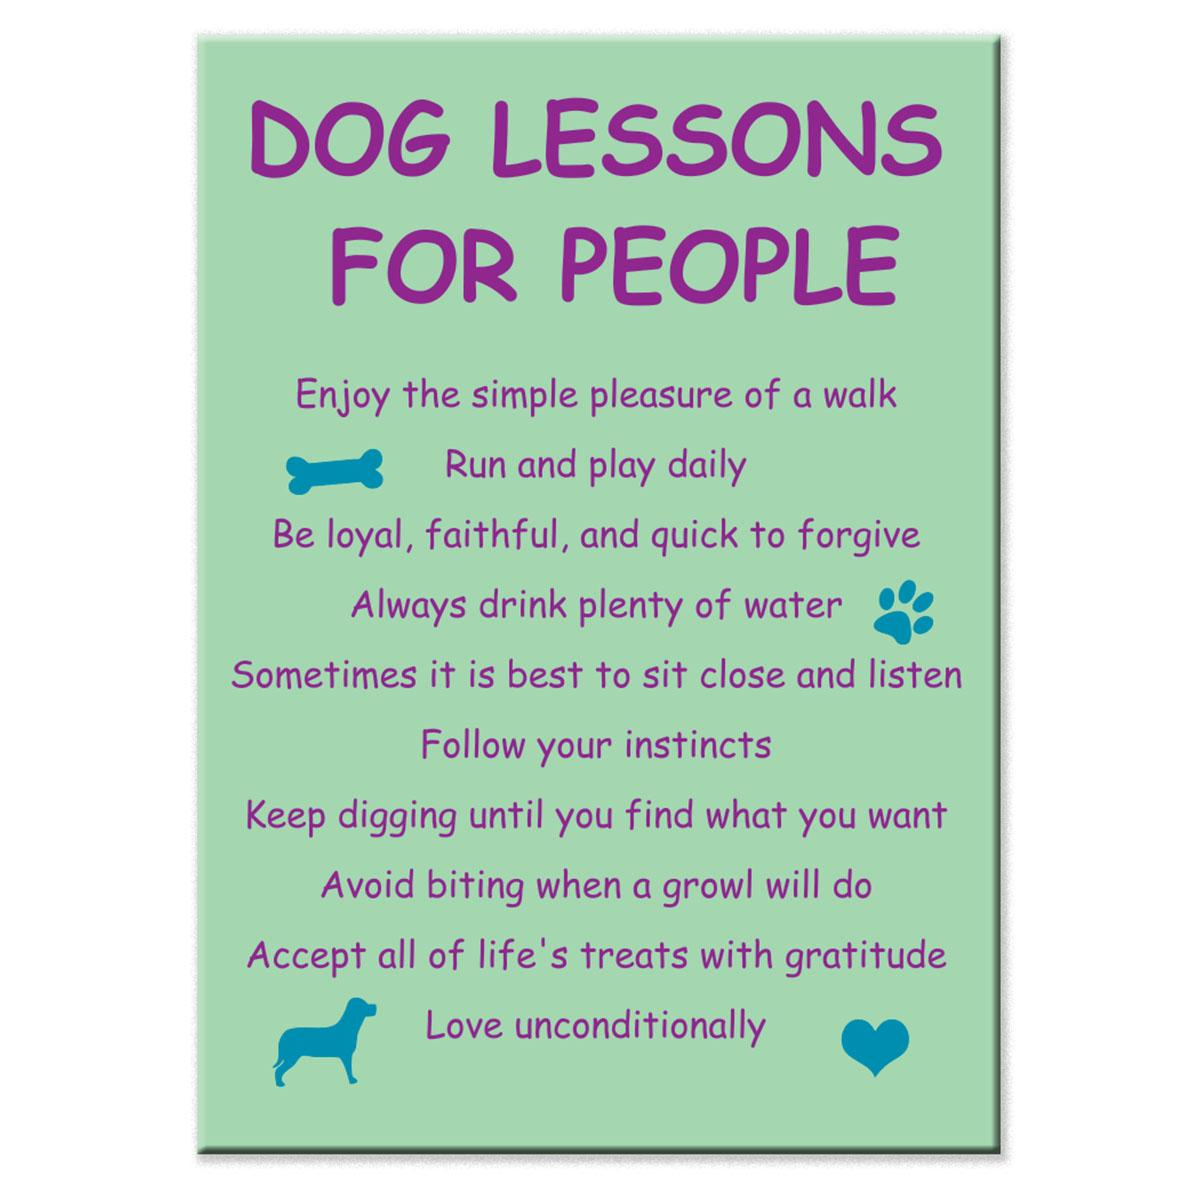 Dog Lessons For People Magnet by Dog Speak